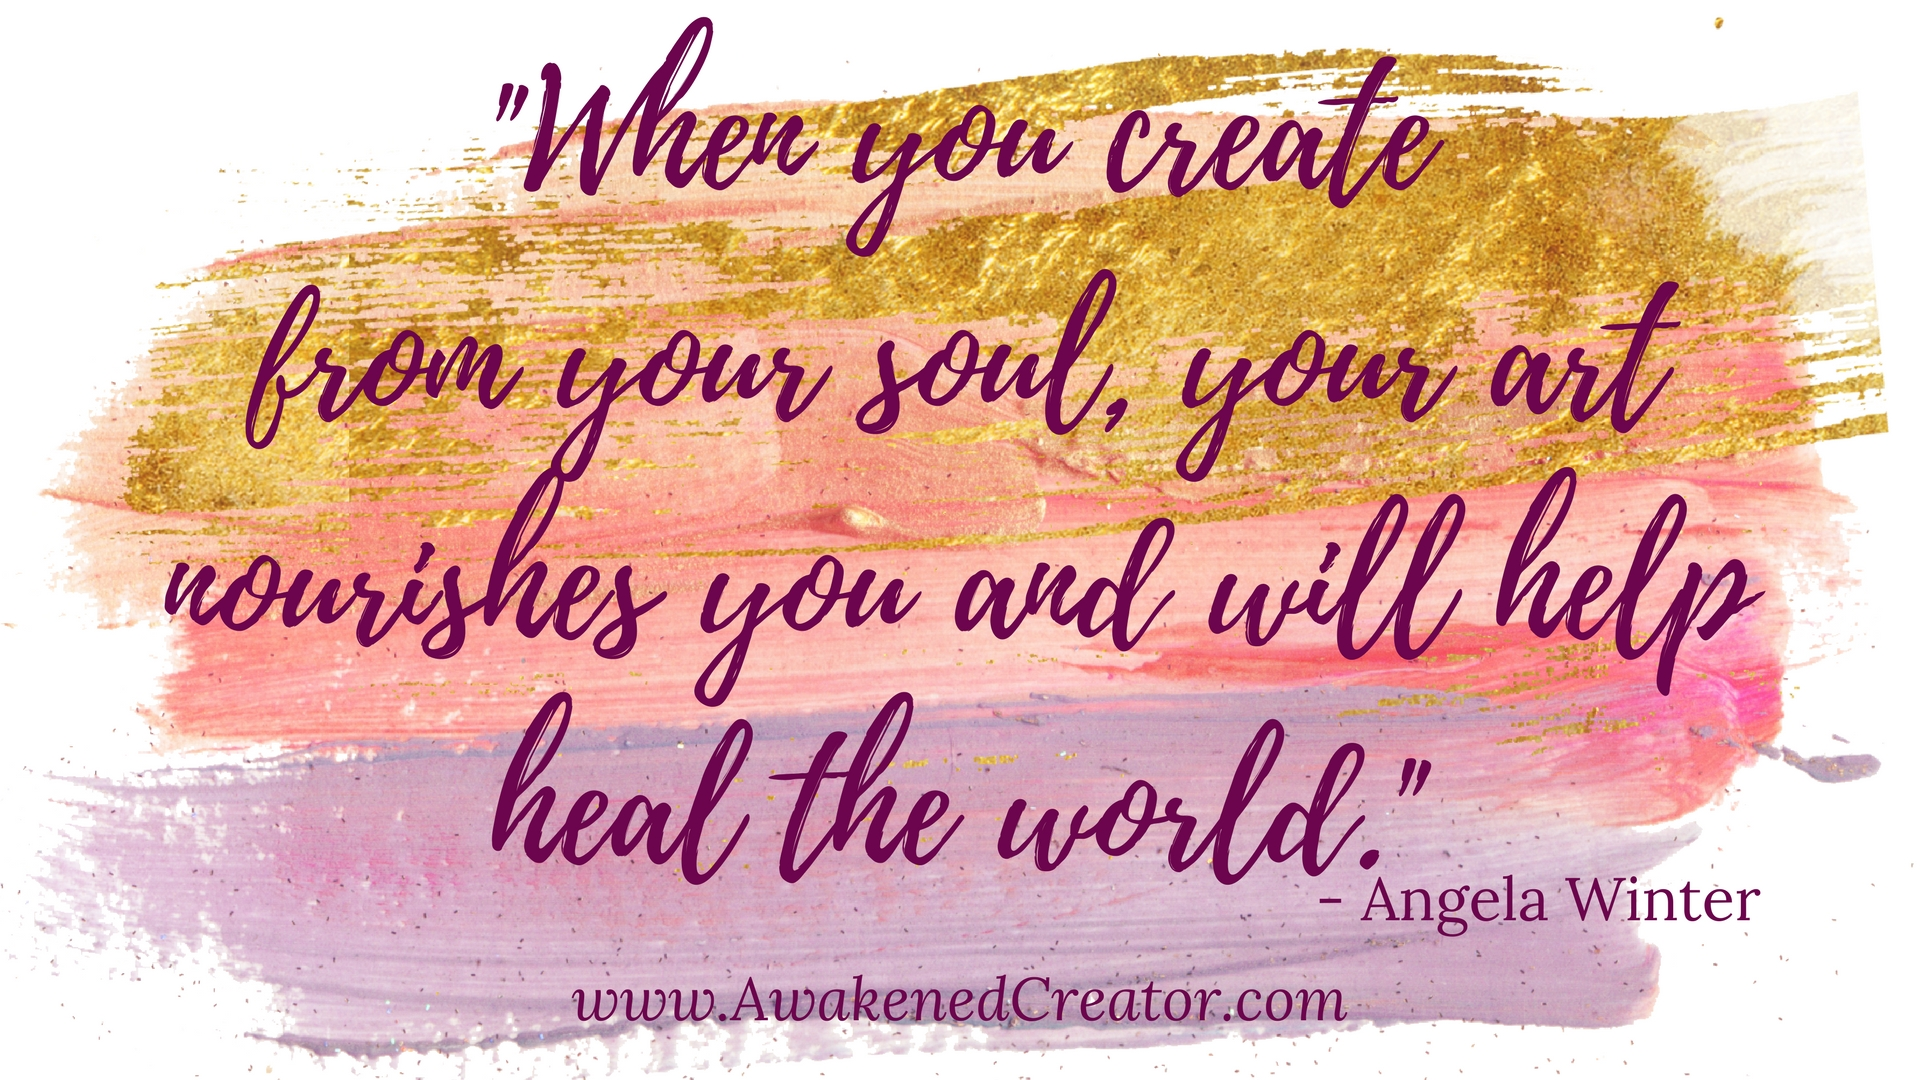 When you create from you soul, your art nourishes you and will help heal the world.